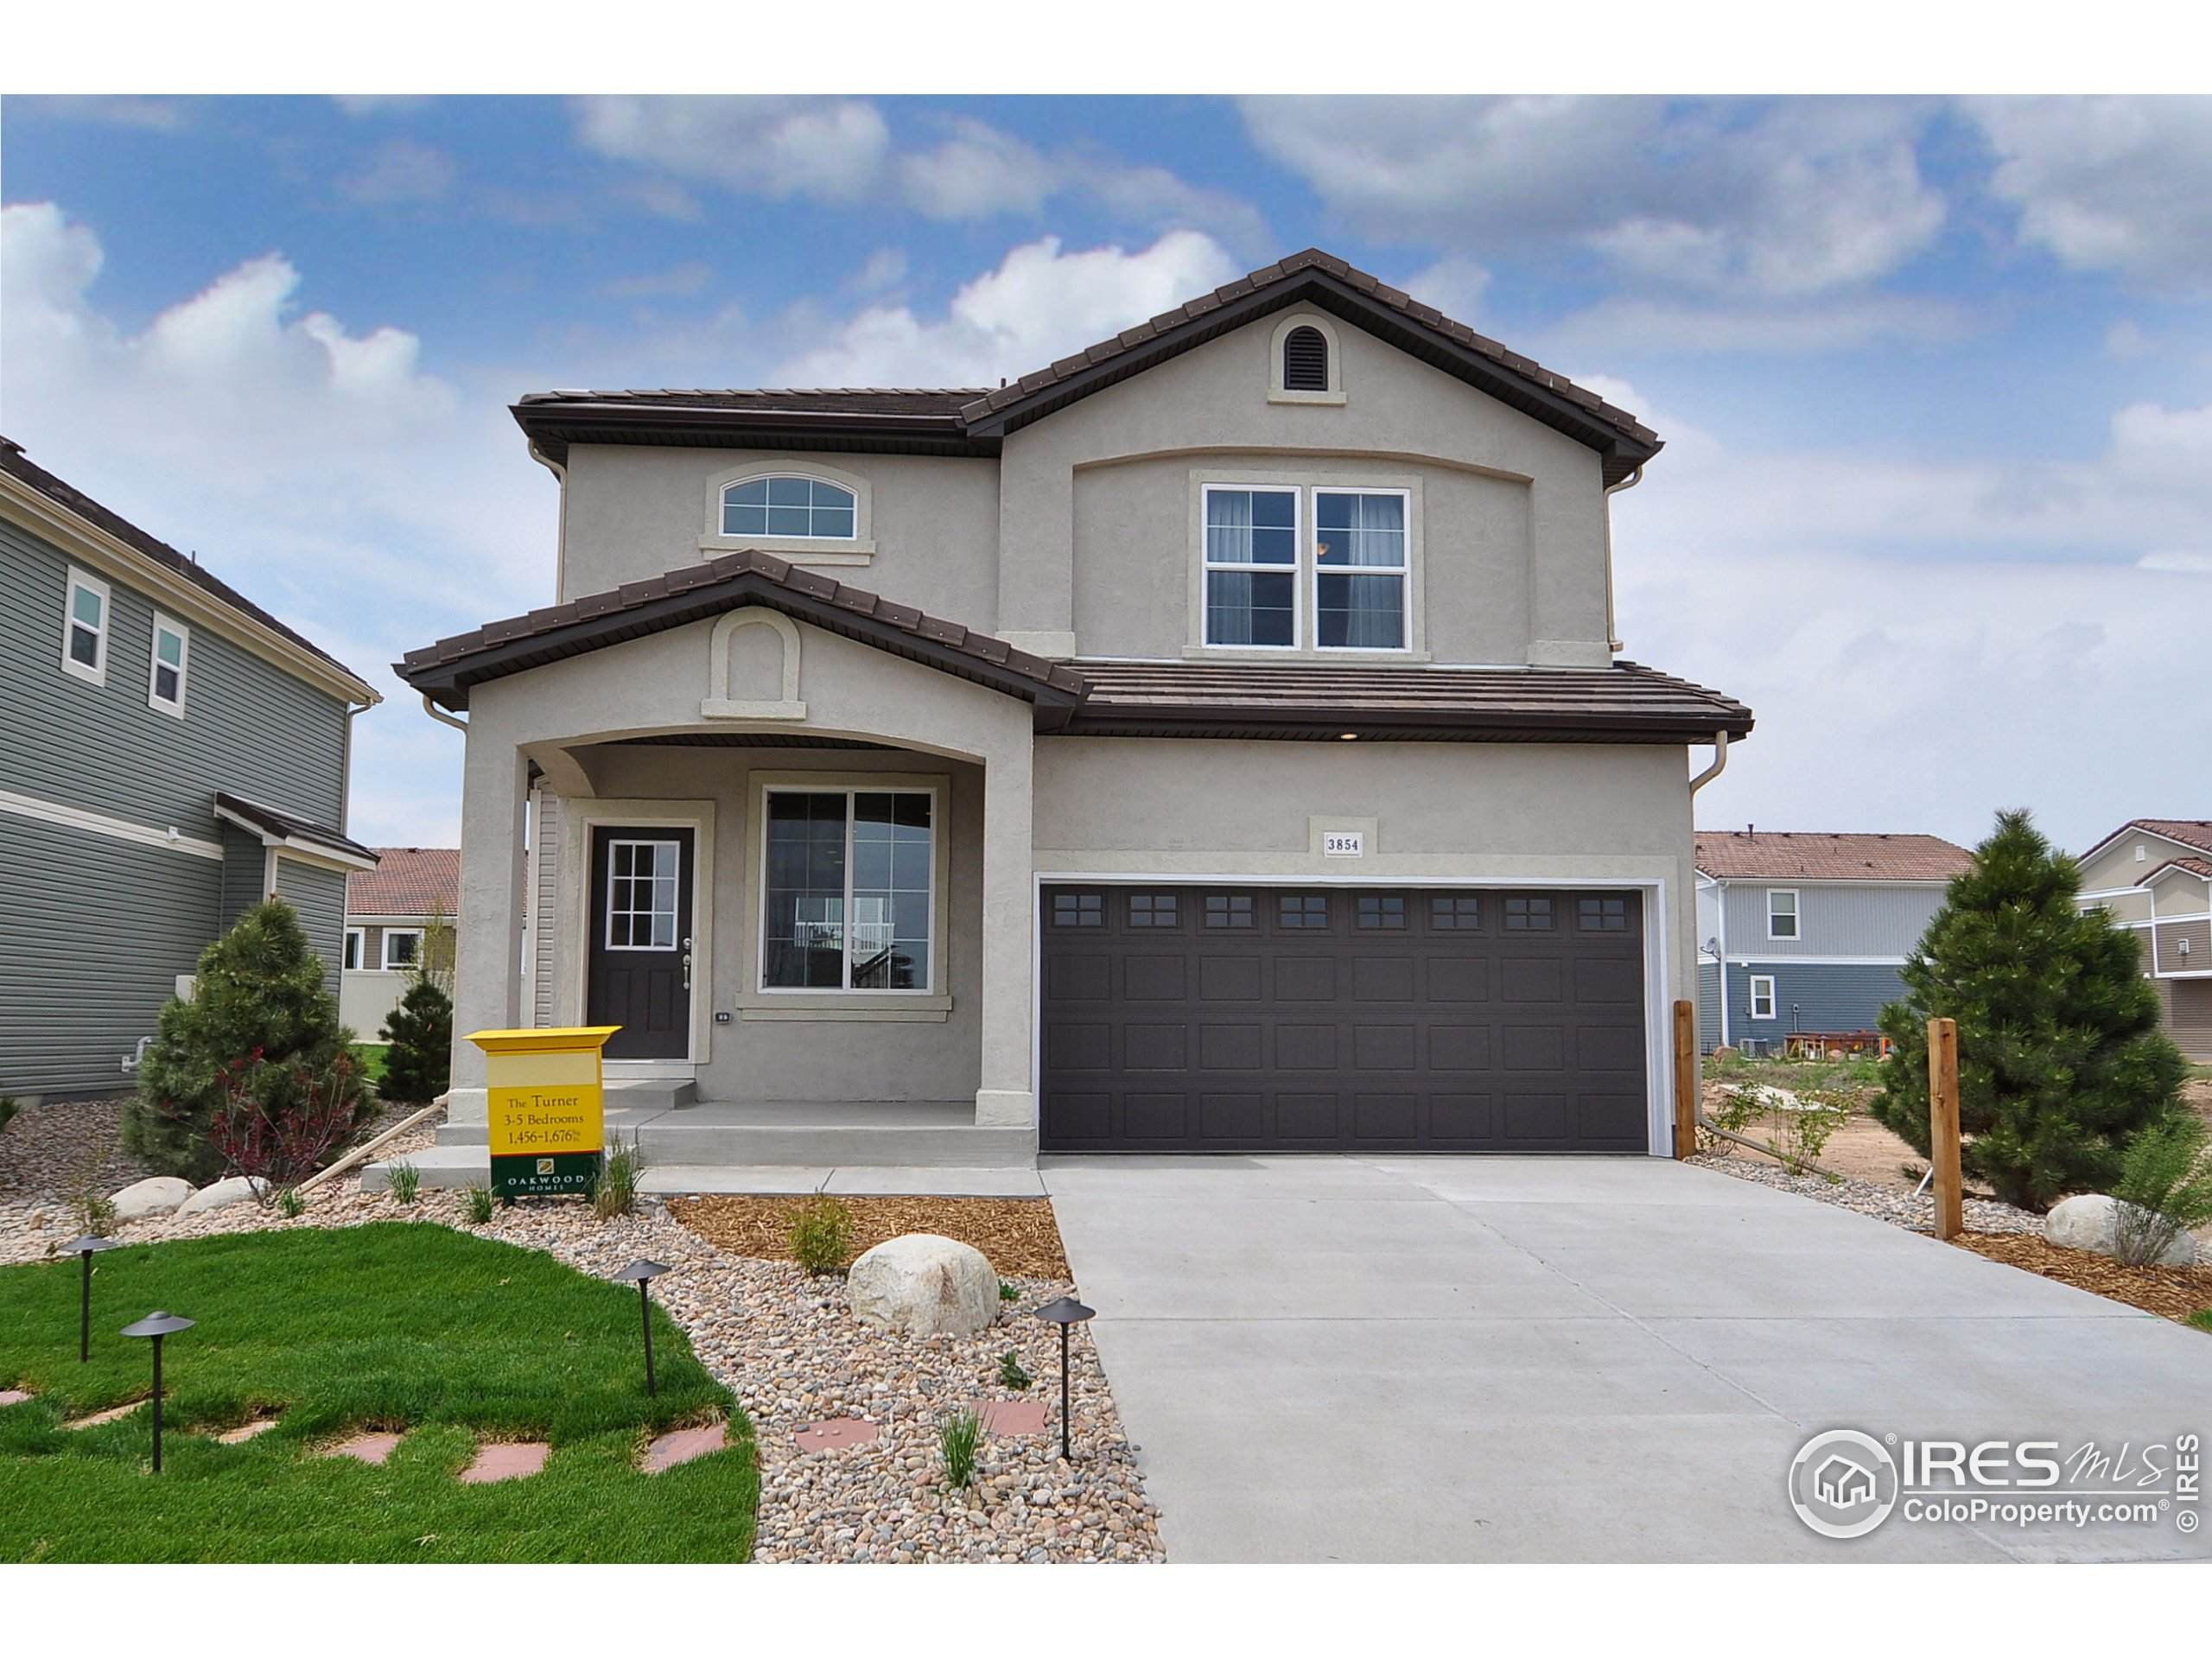 4815 Hilltop Dr, Fort Collins, CO 80526 (MLS #929453) :: J2 Real Estate Group at Remax Alliance